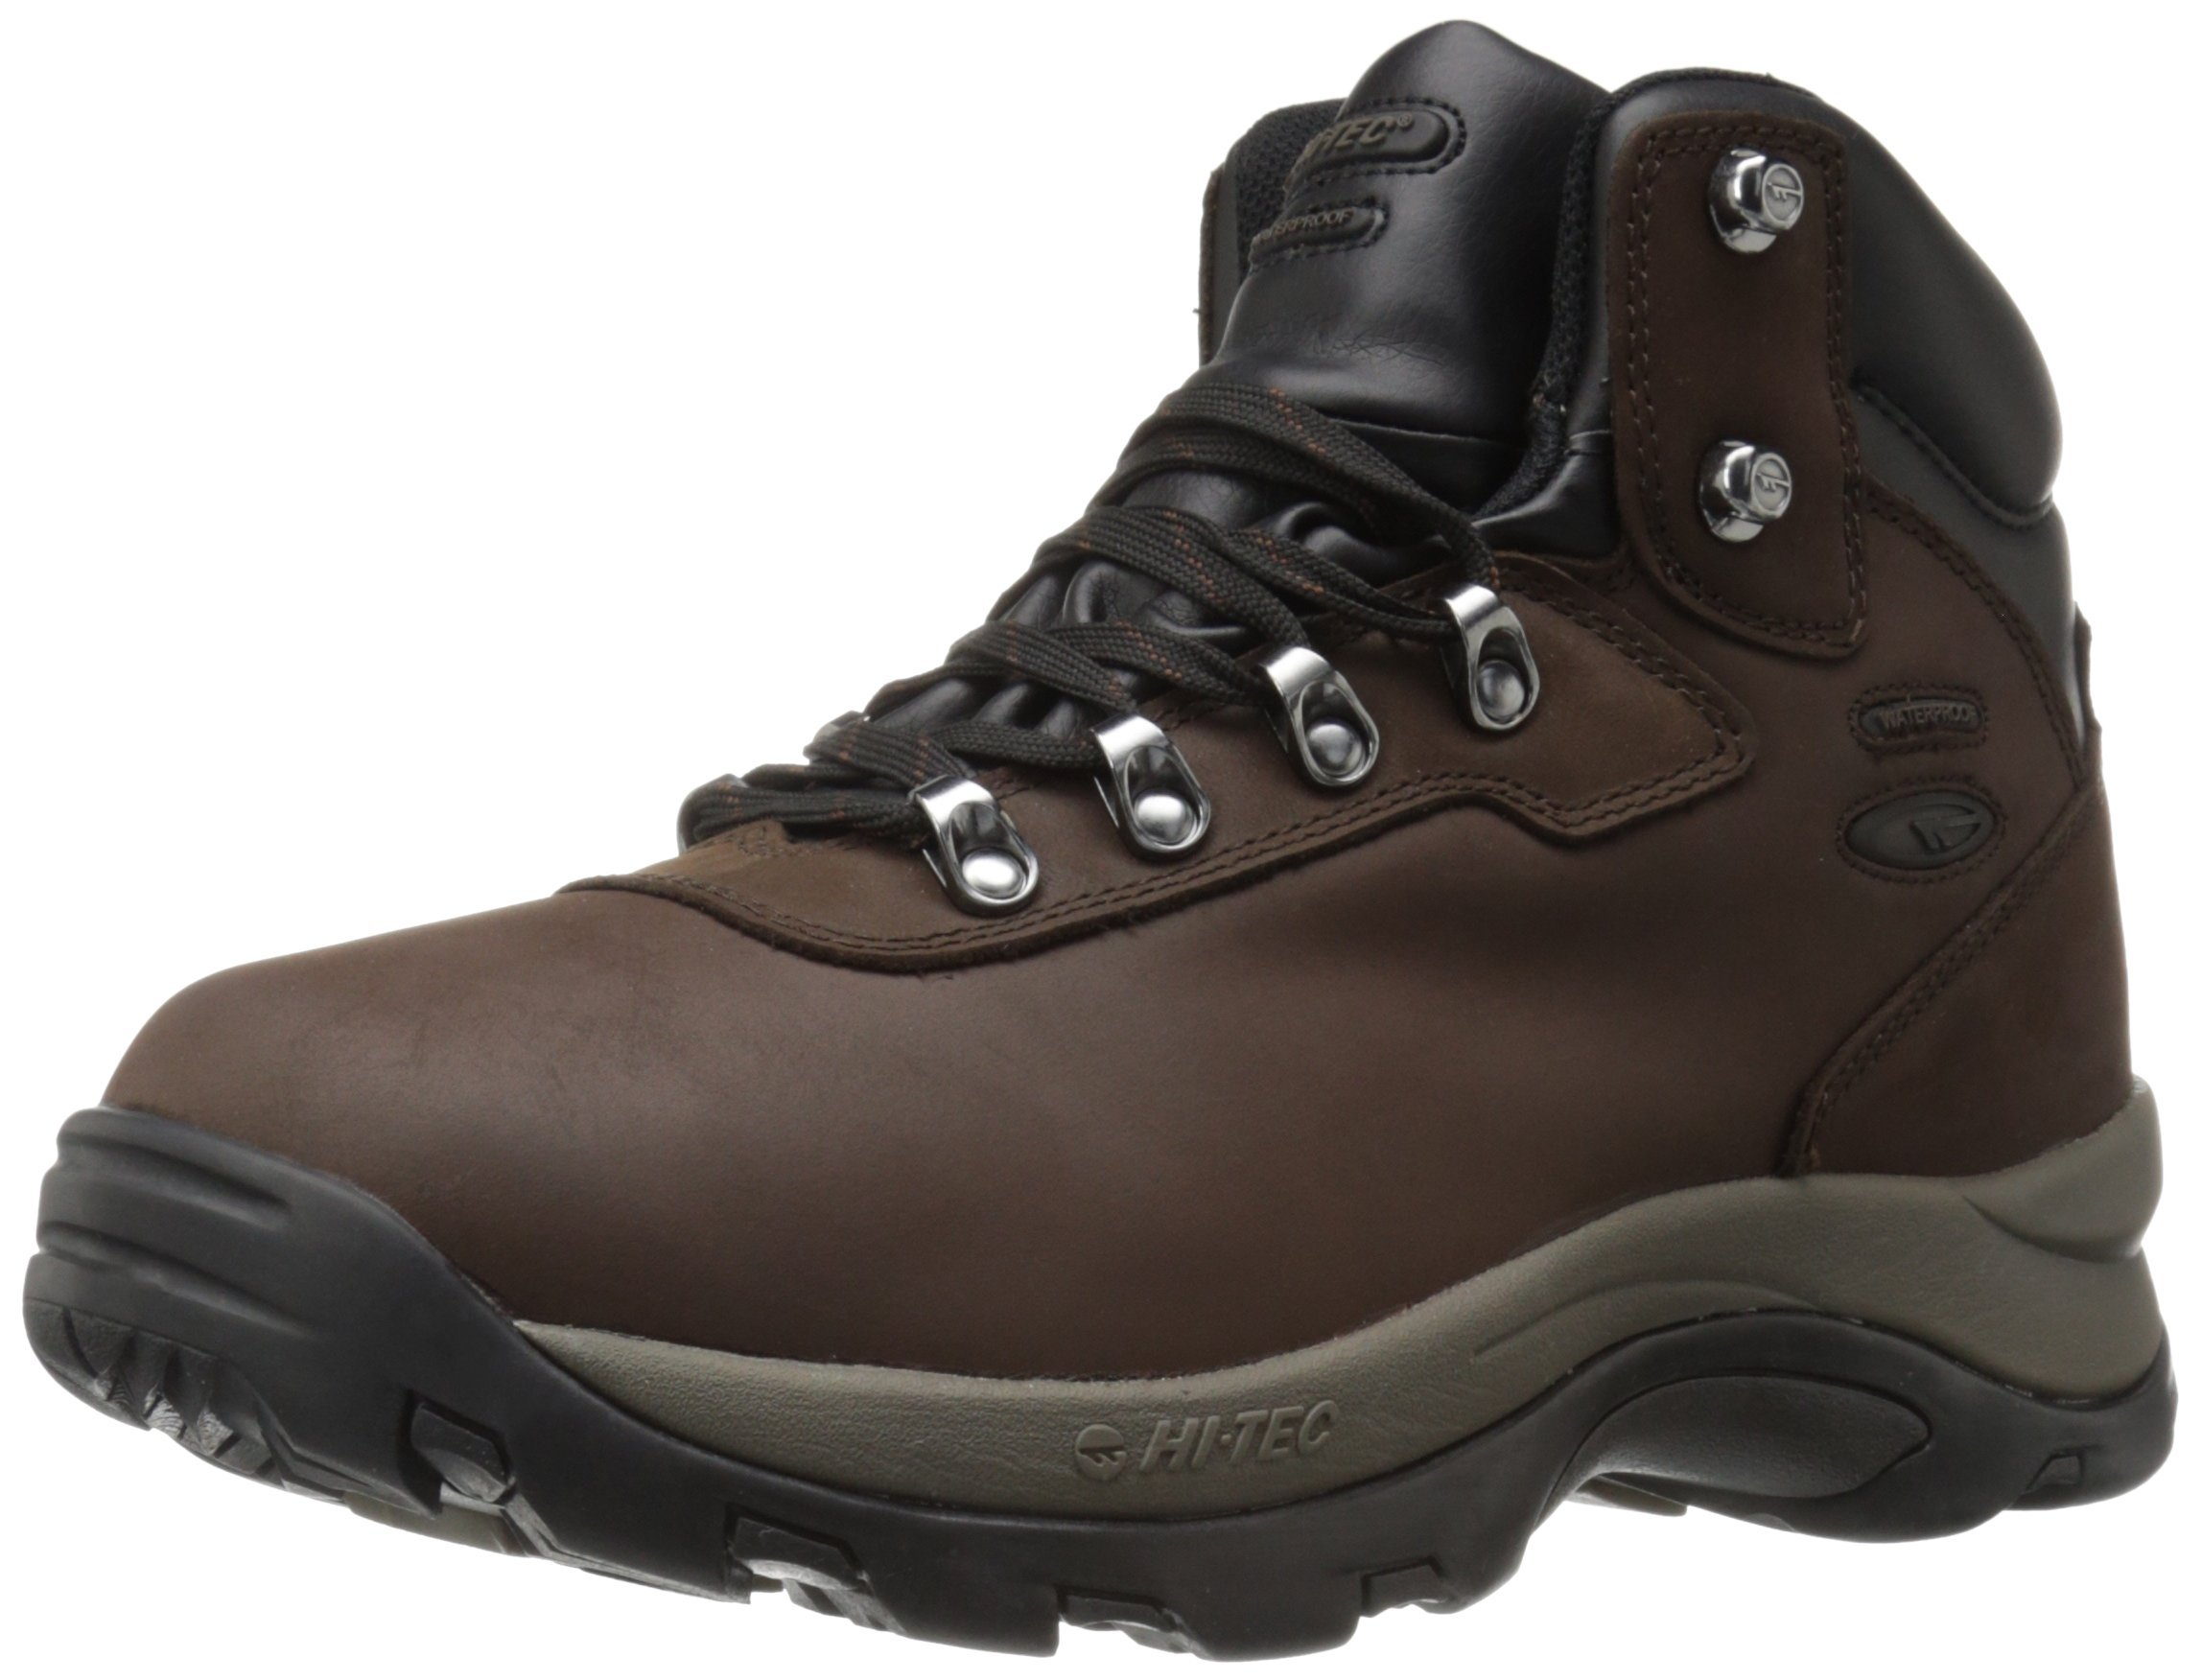 Hi-Tec Men's Altitude IV Waterproof Hiking Boot,Dark Chocolate,10 M by Hi-Tec